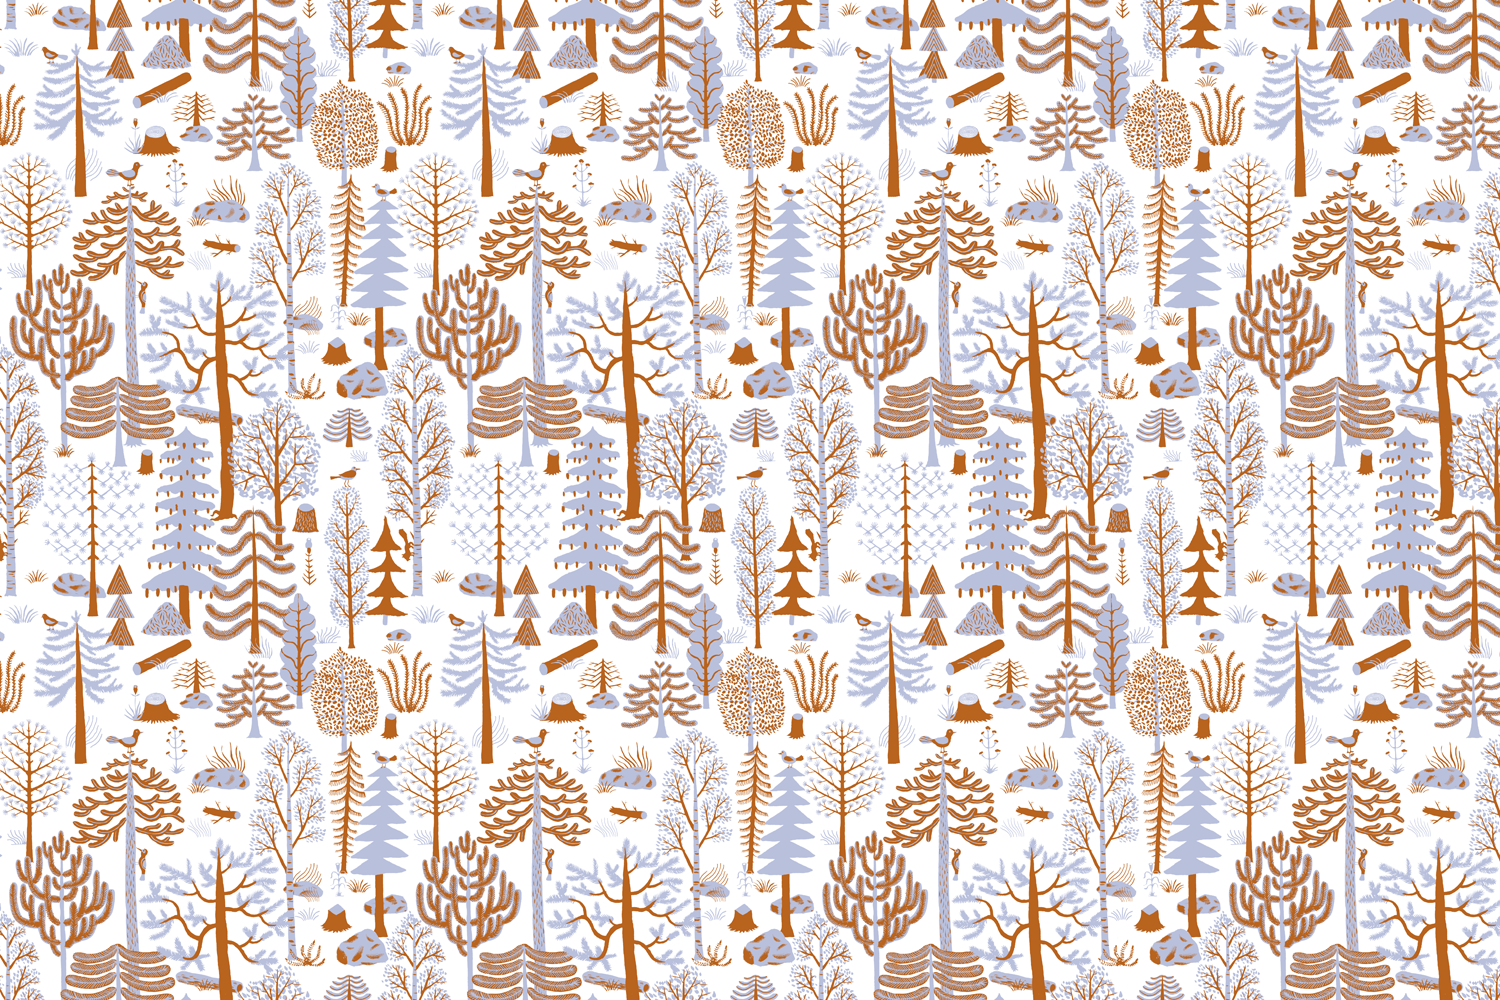 Fabric tree pattern - Related Posts